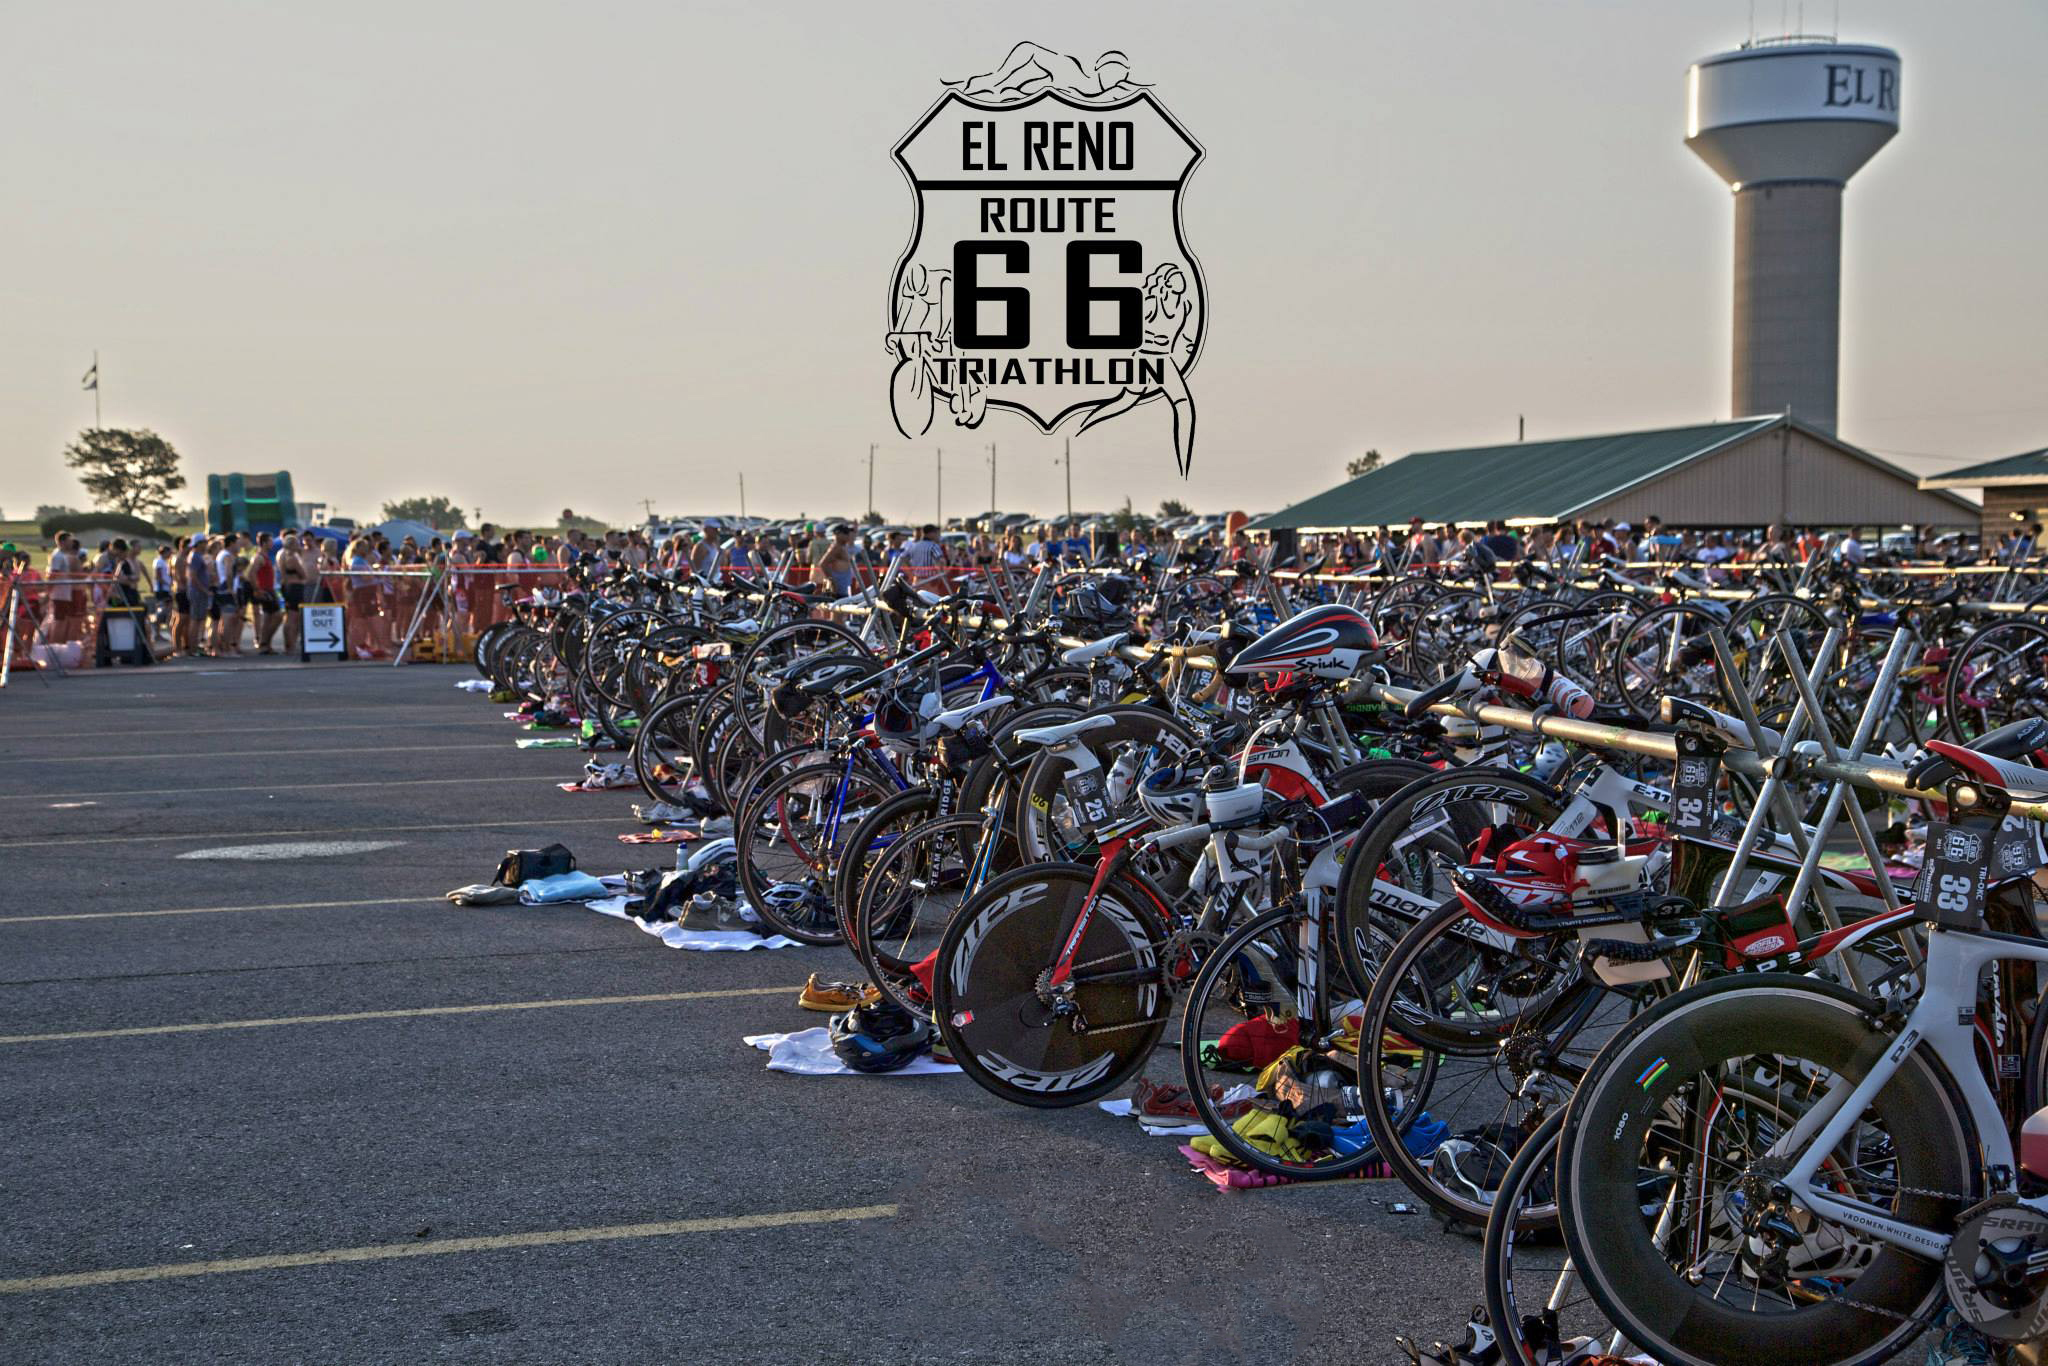 Route 66 Transition